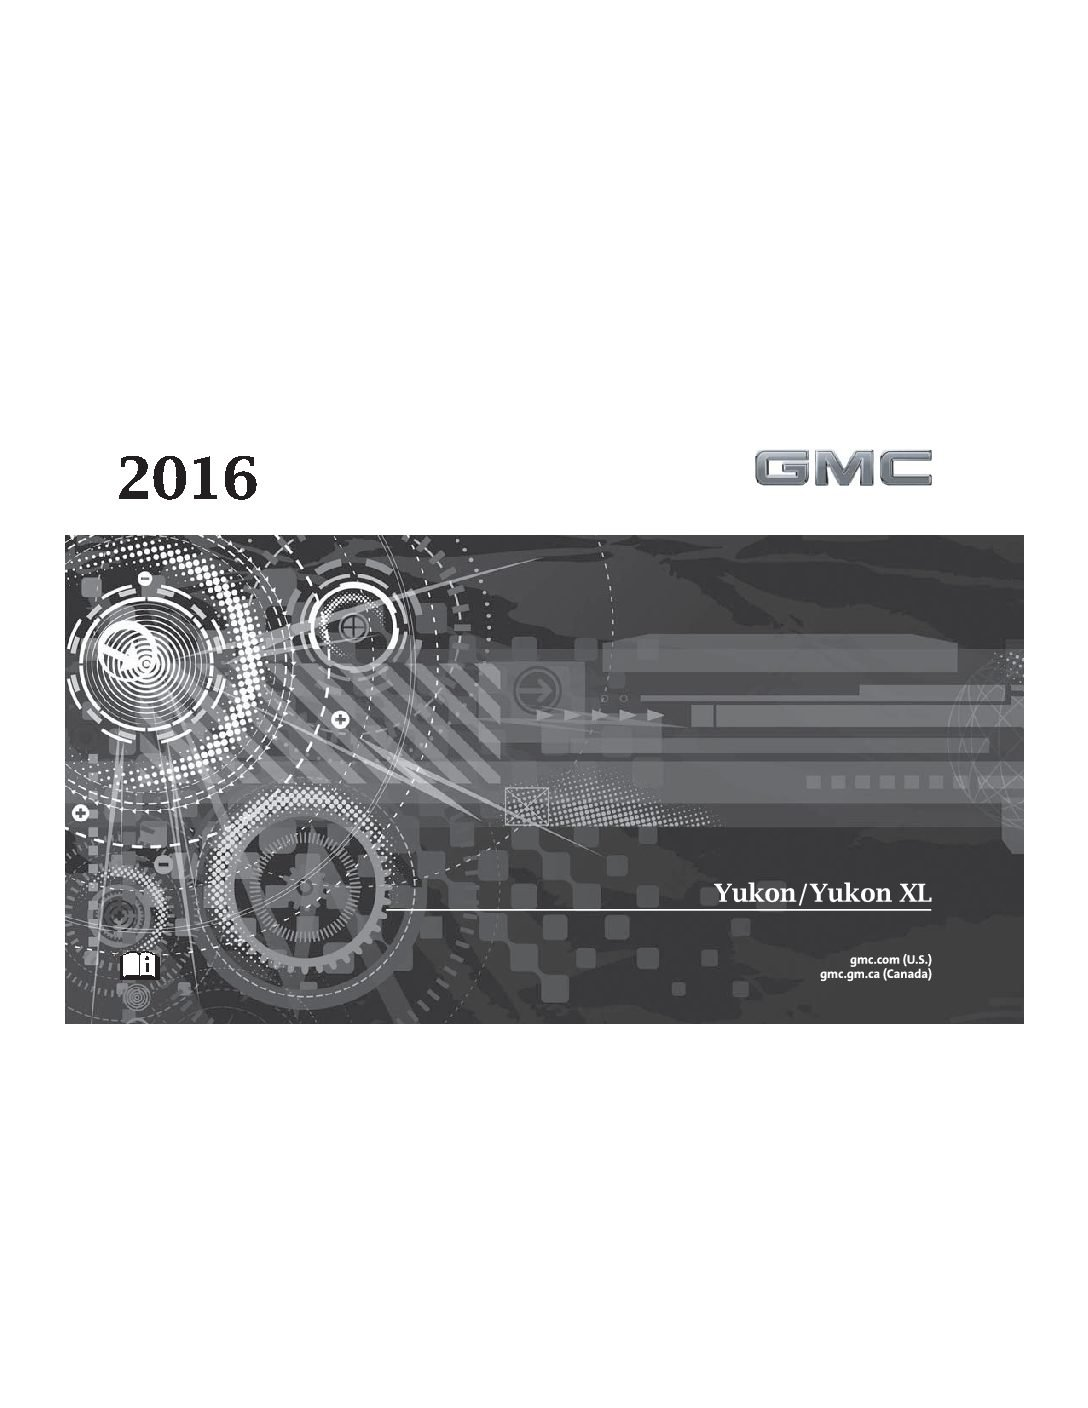 2016 gmc yukon yukonxl owners manual just give me the damn manual rh justgivemethedamnmanual com 2002 GMC Yukon XL CarGurus 2002 GMC Yukon XL Parts